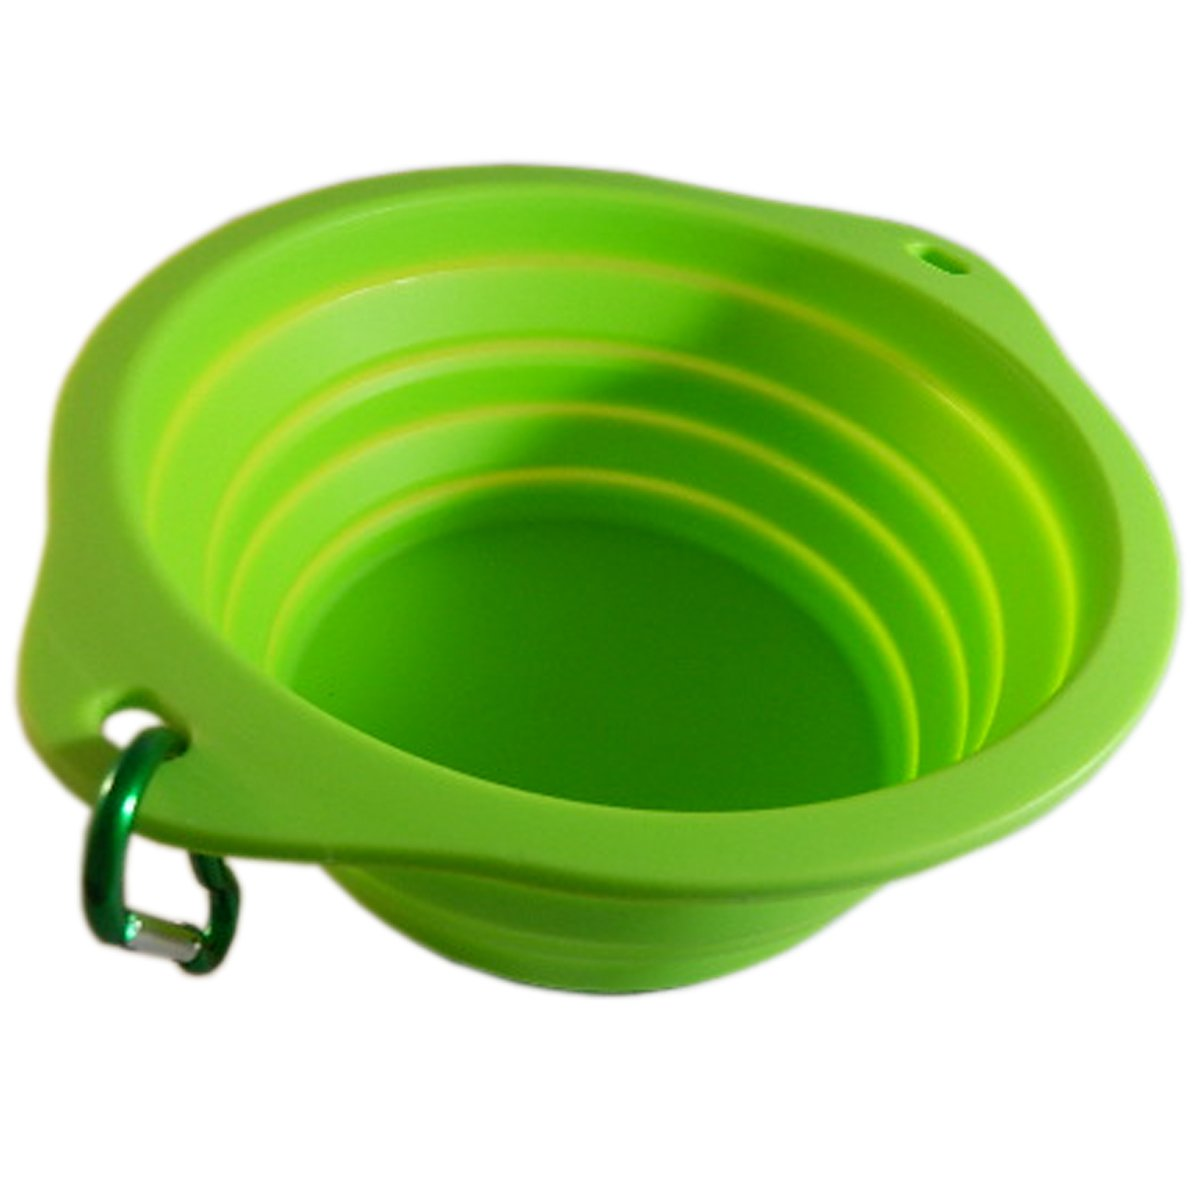 KIO Collapsible Pet Food Bowl for Traveling | Silicone Pet Food Bowl Made with Food Grade Silicone, BPA Free | Take Your Pet's Food Water Bowl with you | Travel Pet Bowl Perfect for Any Size Pet